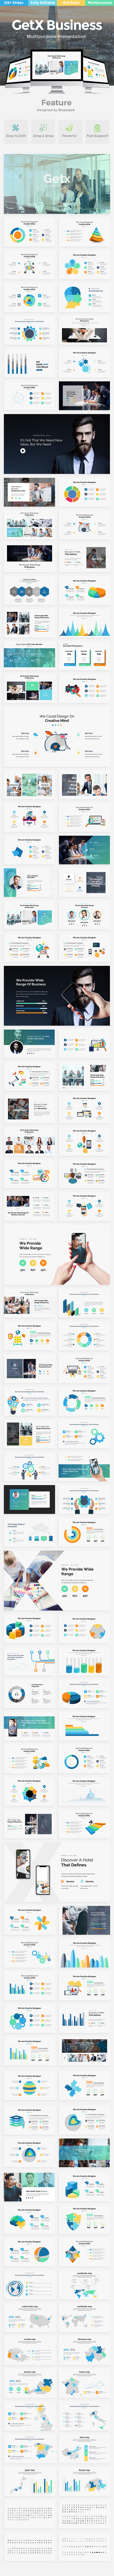 Getx Business Keynote Template - Business Keynote Templates